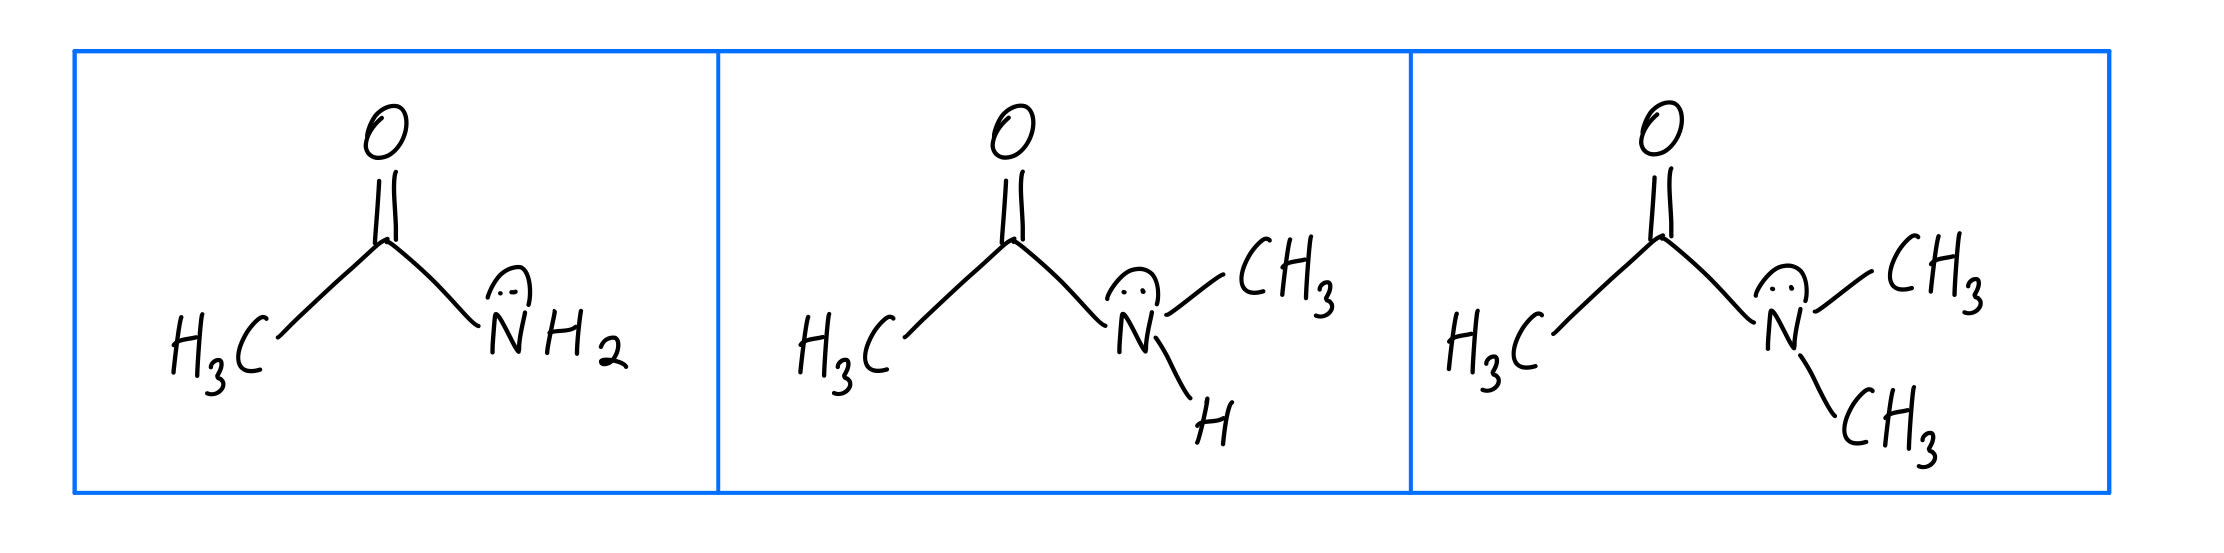 Amide Lewis structures